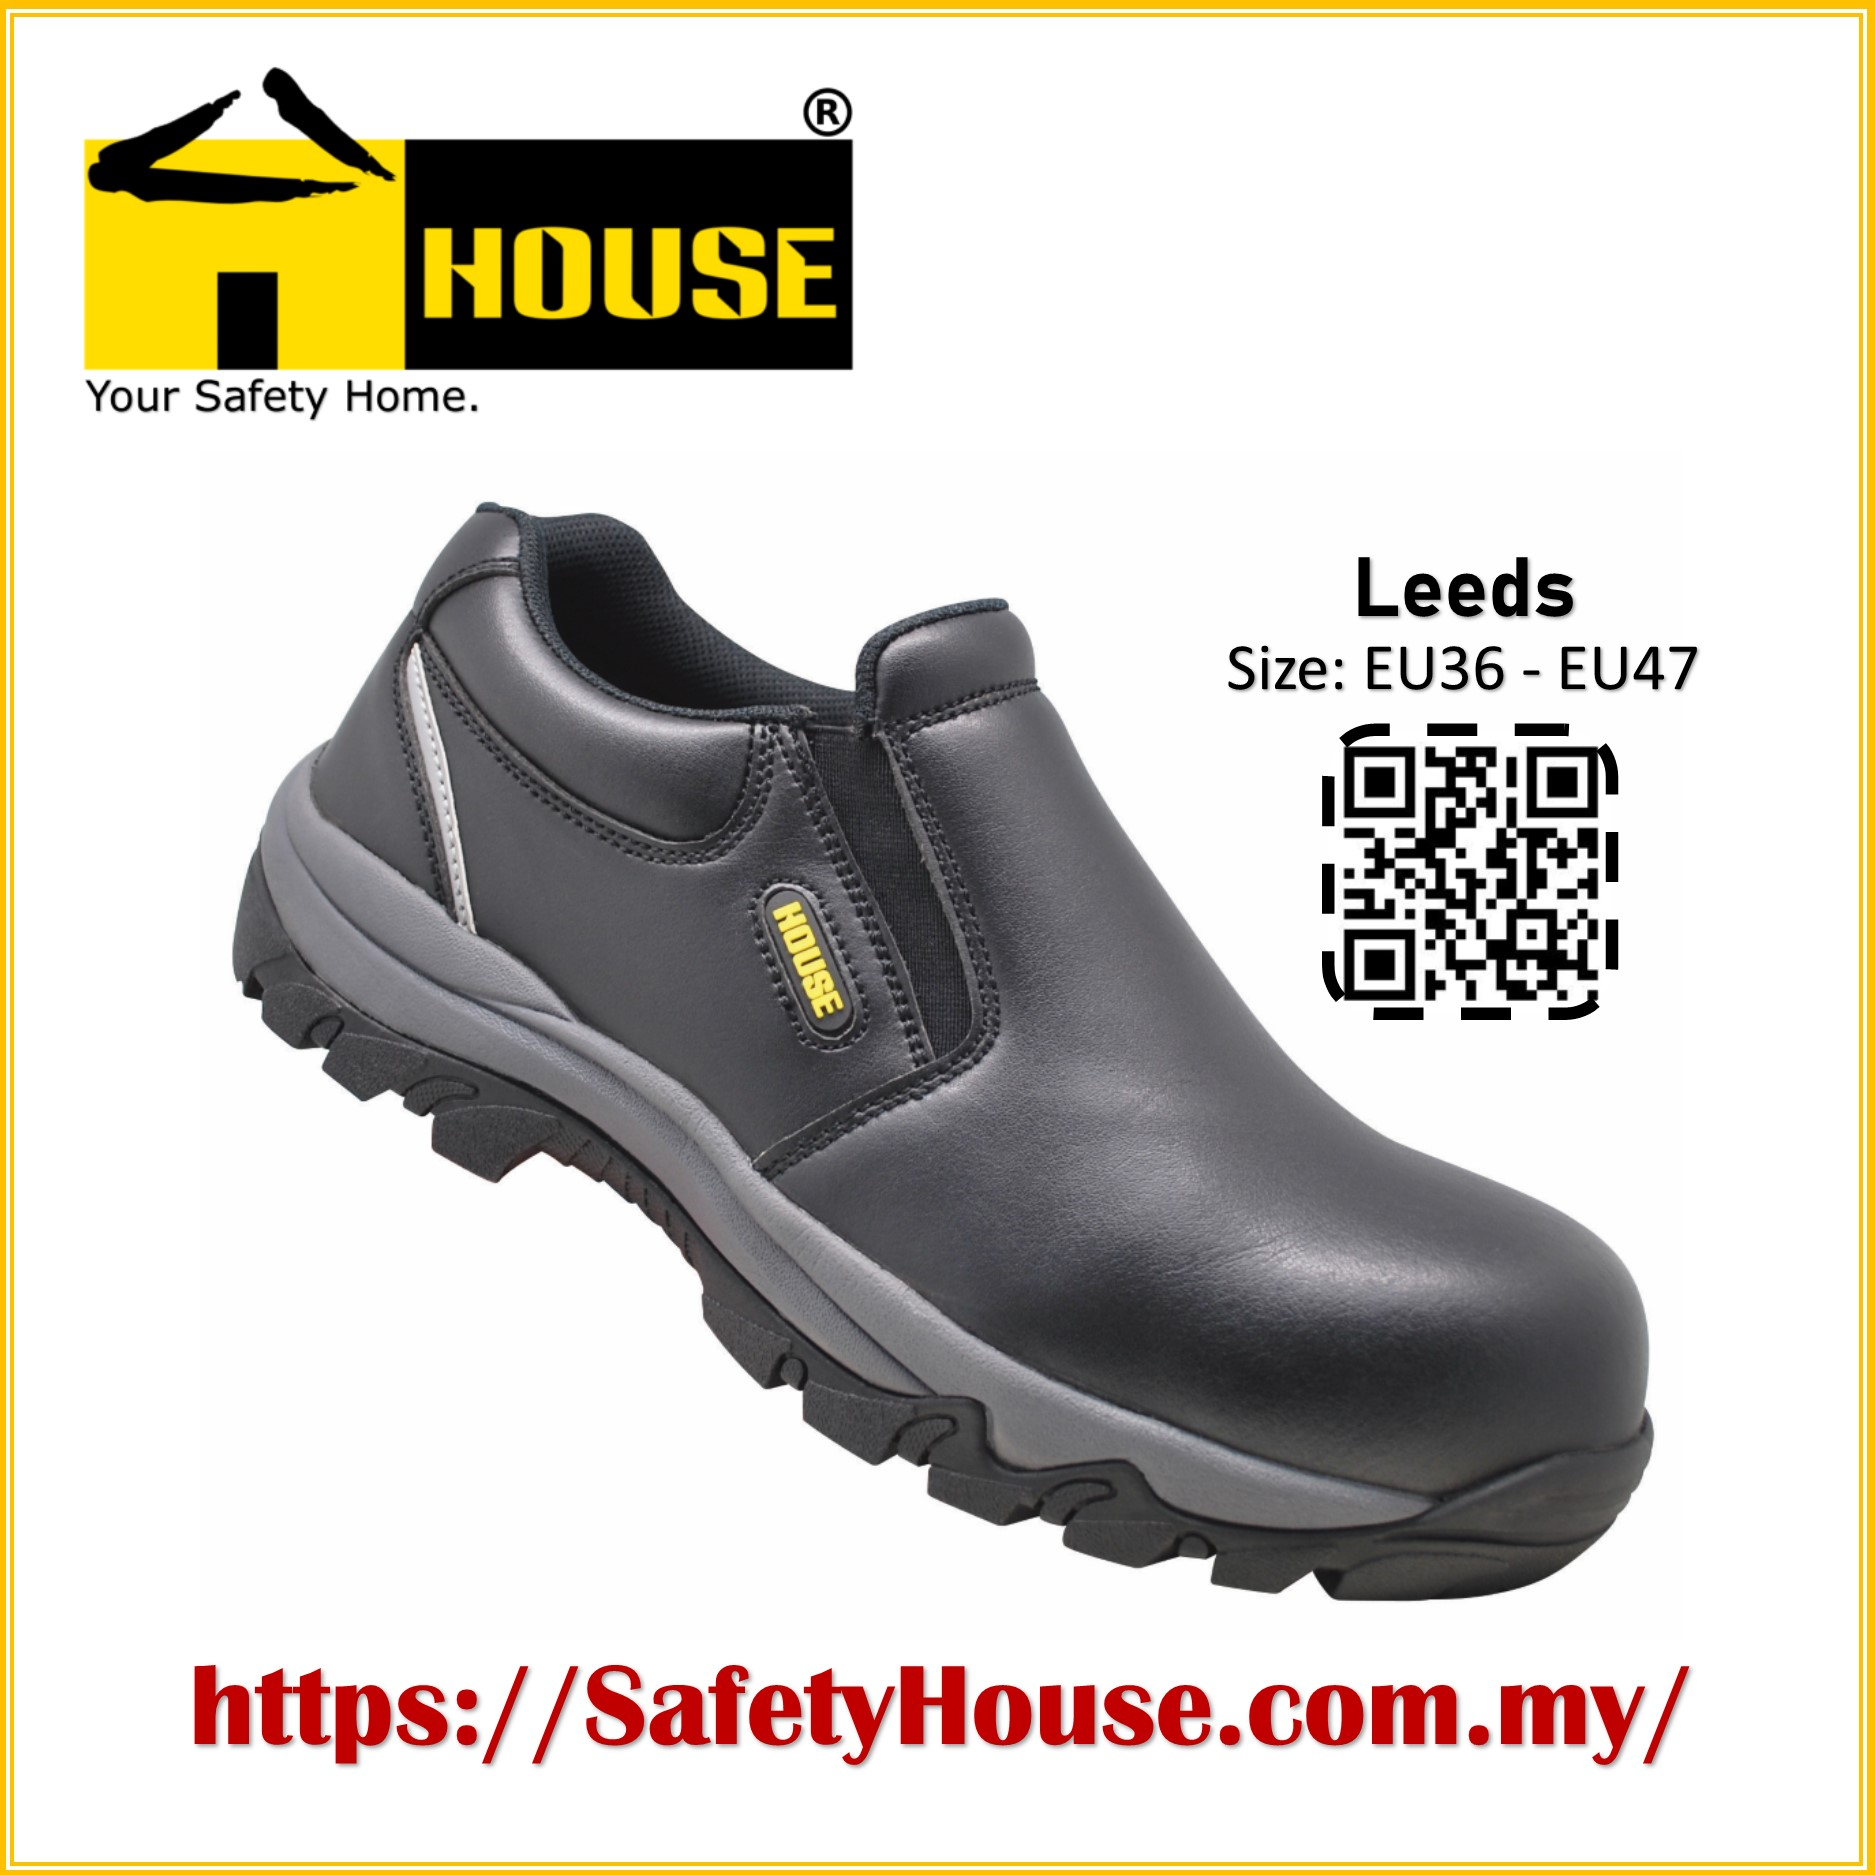 HOUSE LEEDS SAFETY SHOES C/W COMPOSITE TOE CAP & ARAMID MID SOLE Image